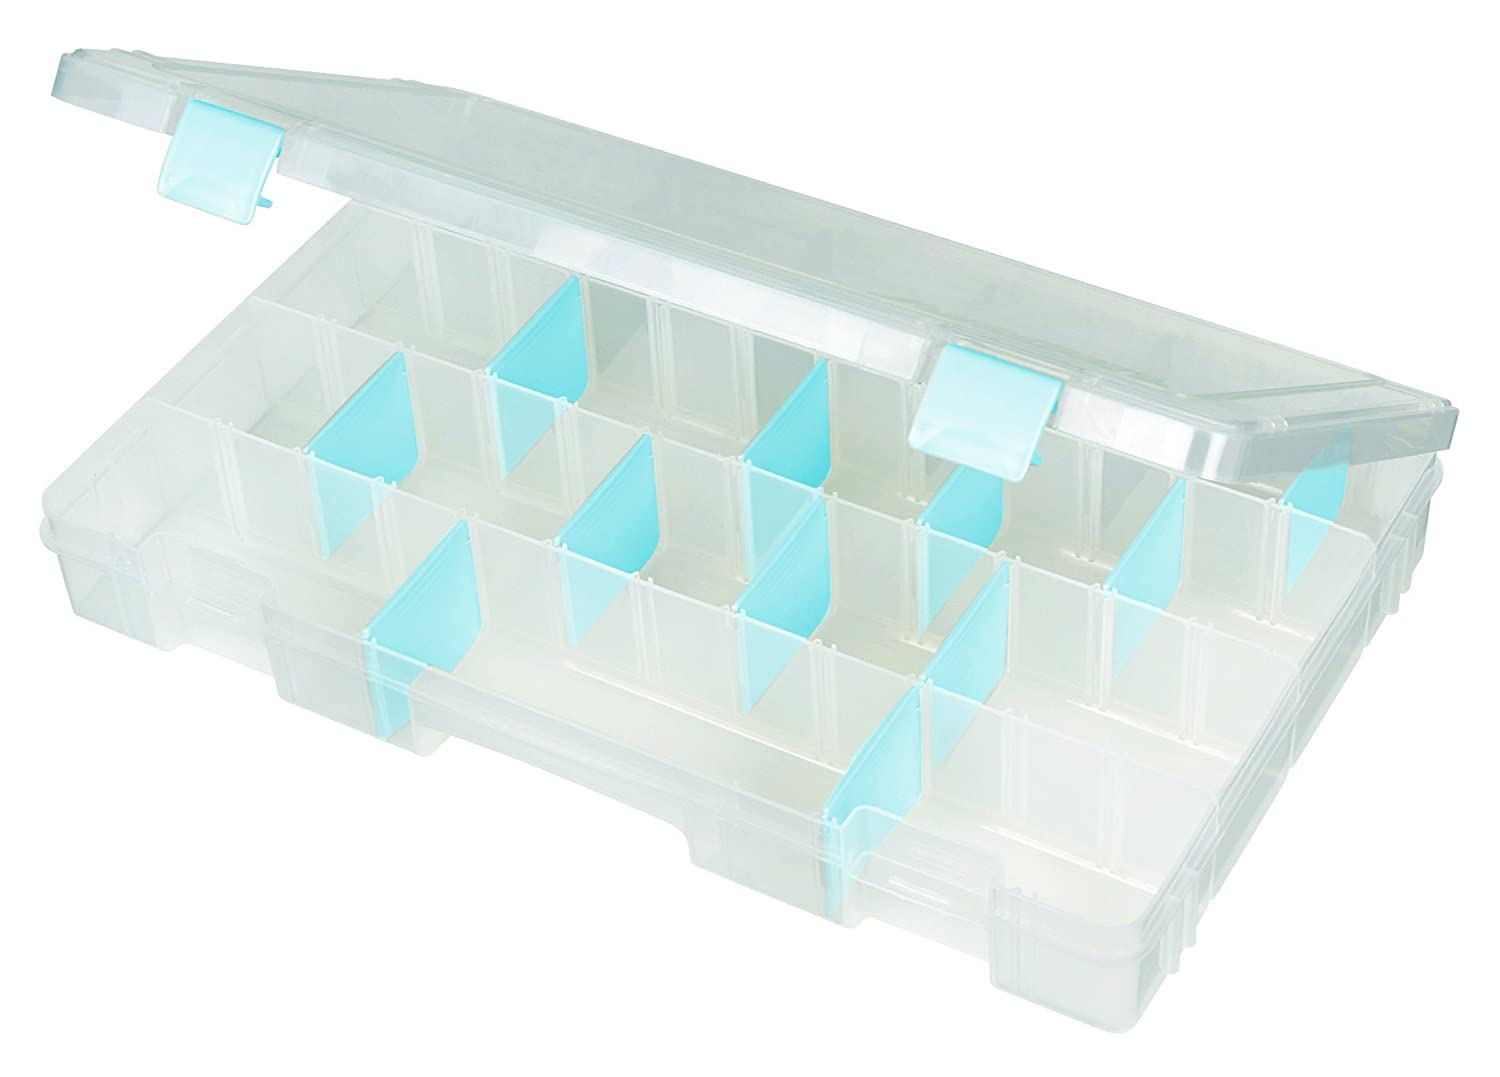 ArtBin Zerust Anti-Tarnish Box Large 4 compt.-Translucent Jewelry Storage Container, 6857AG